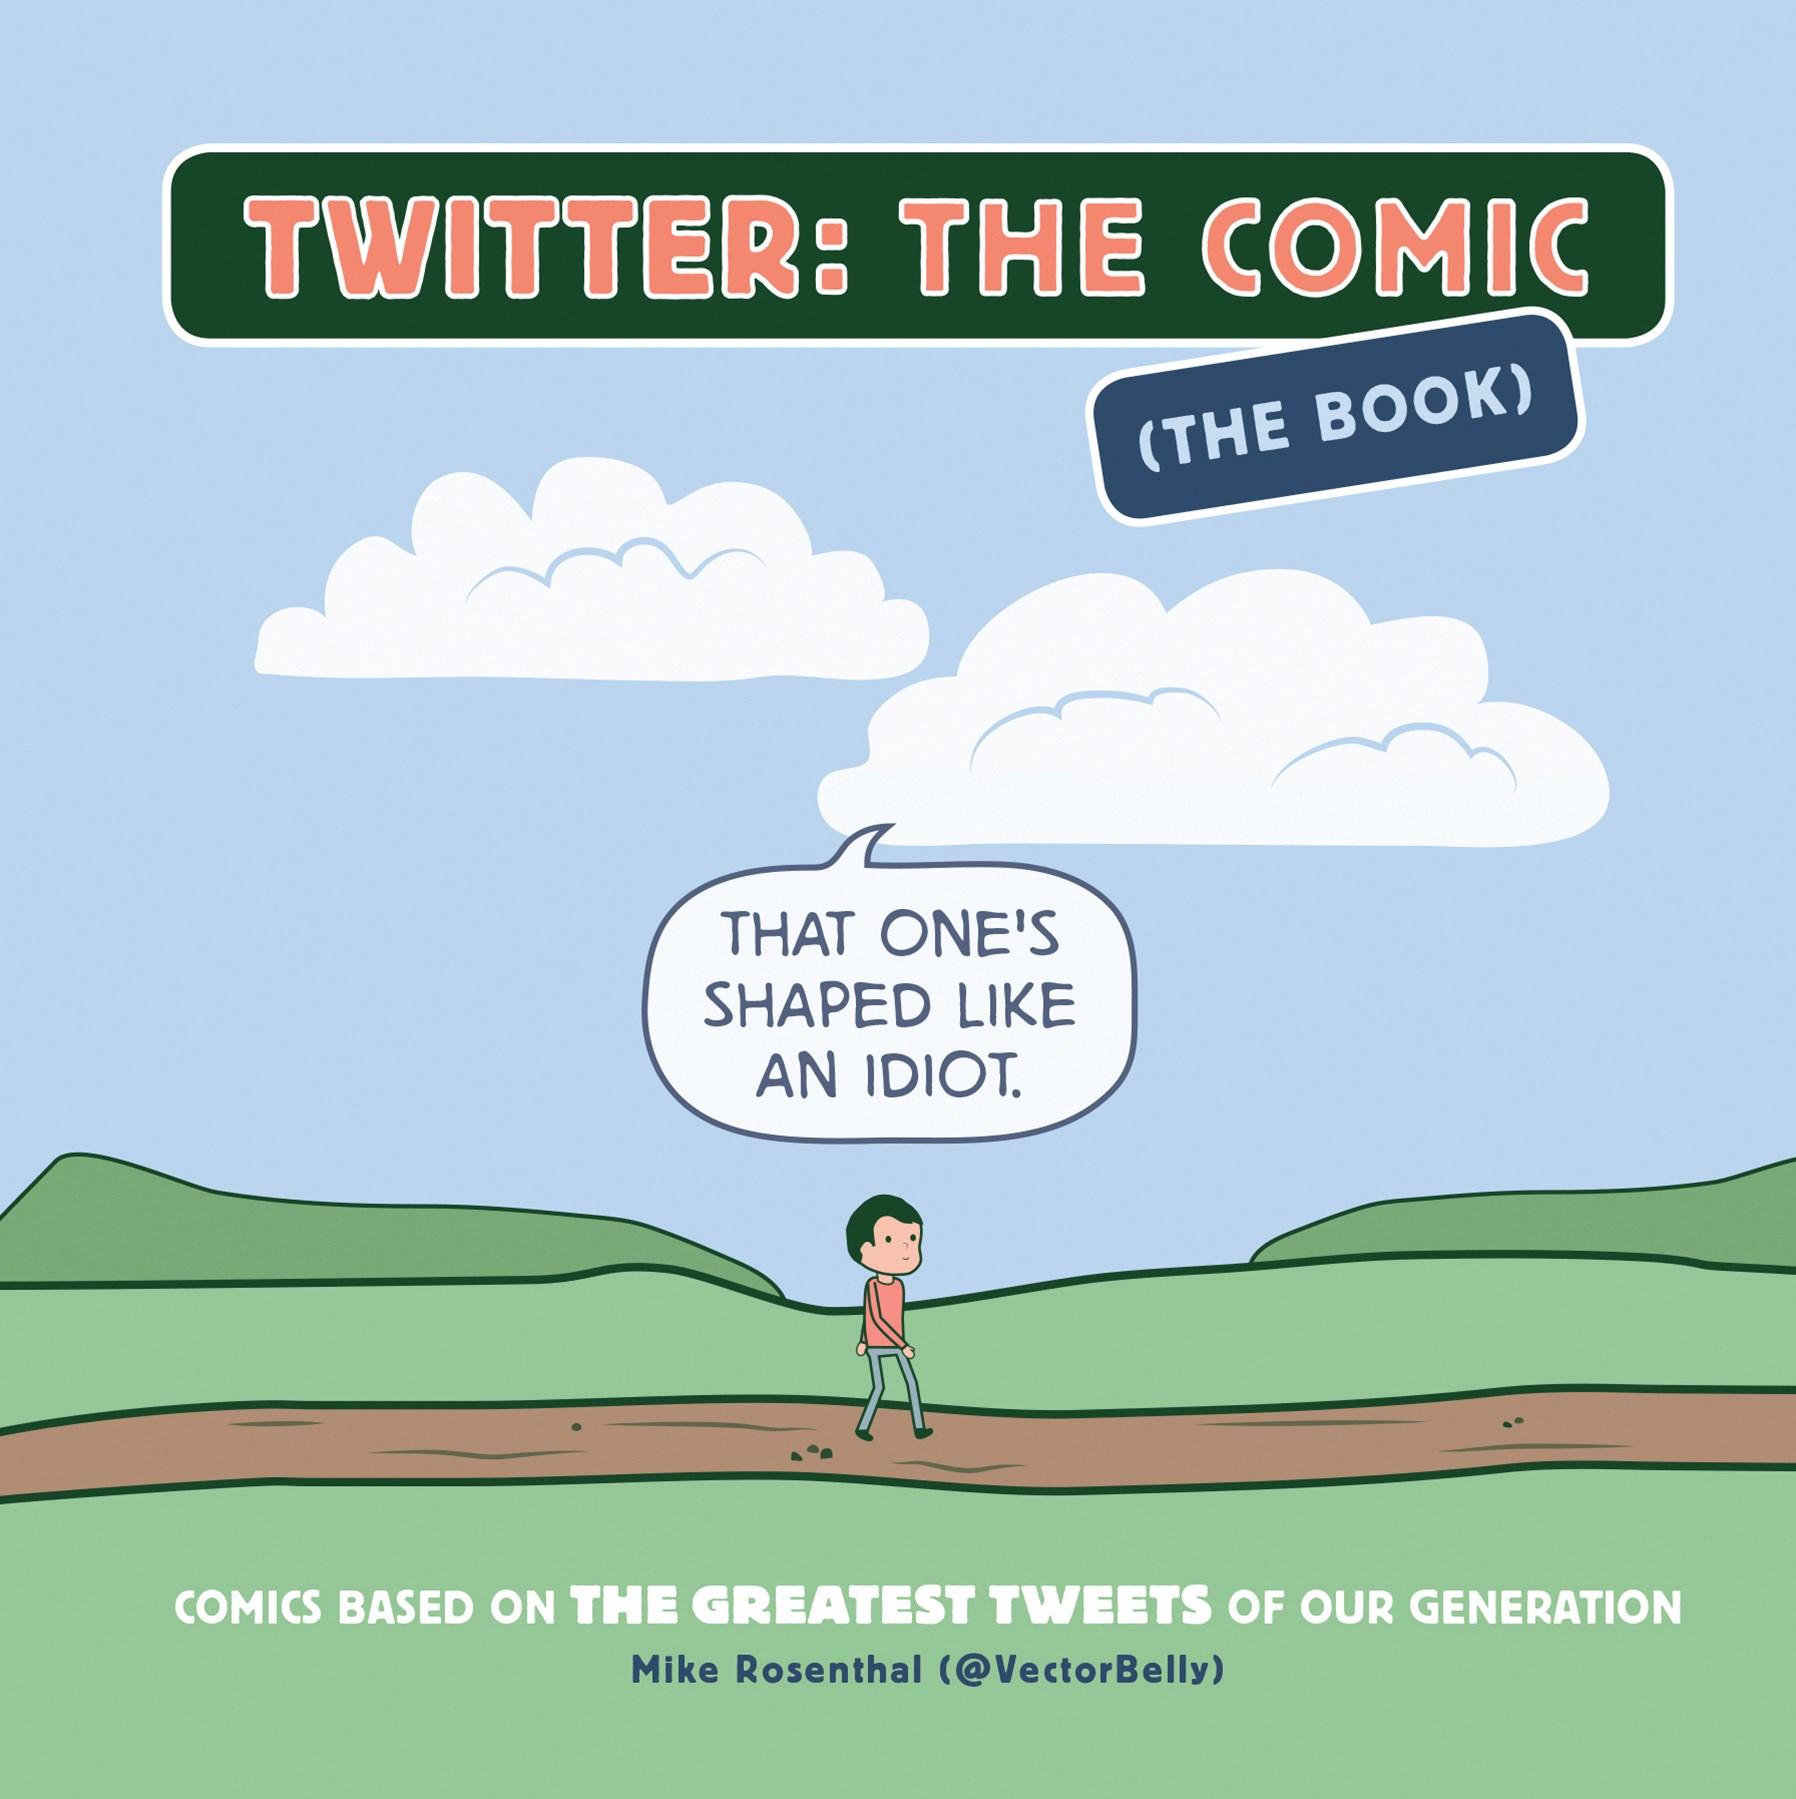 Twitter - The Comic